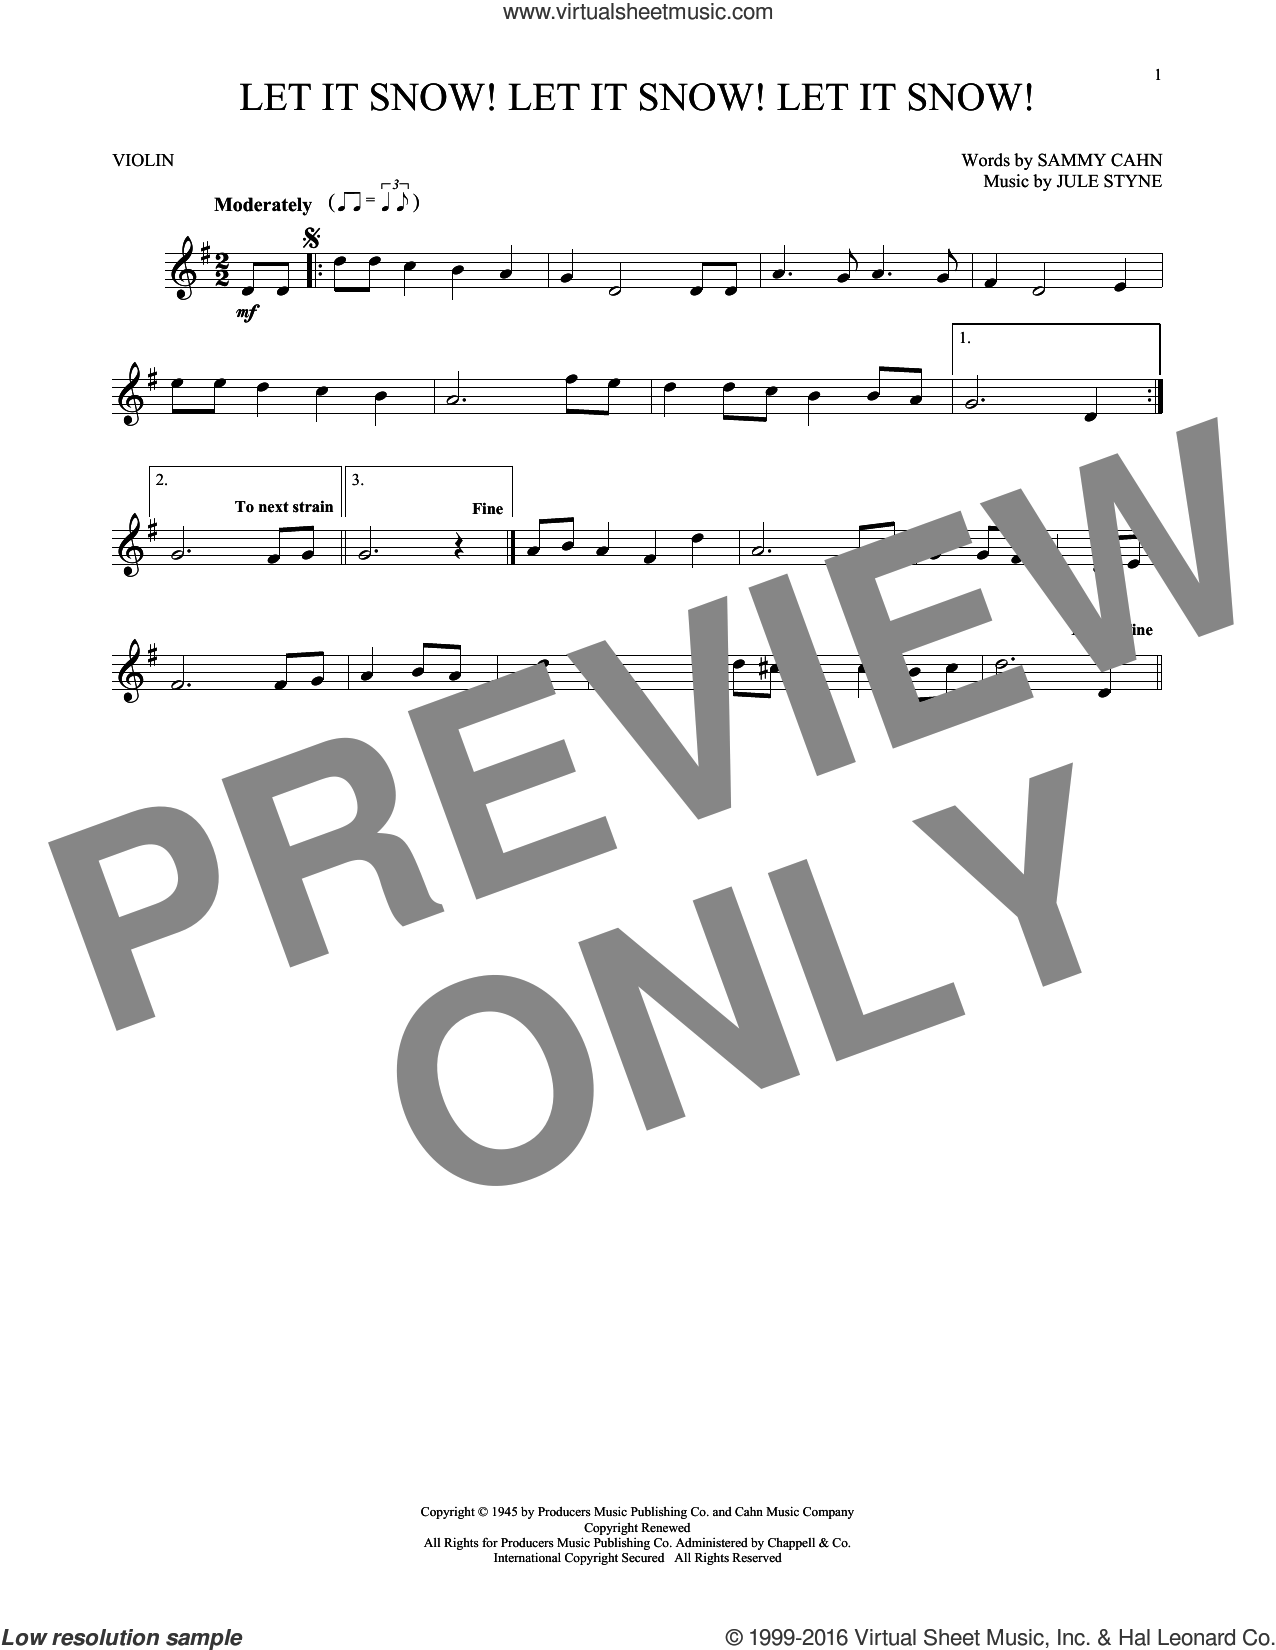 Let It Snow! Let It Snow! Let It Snow! sheet music for violin solo by Sammy Cahn, Jule Styne and Sammy Cahn & Julie Styne, intermediate skill level